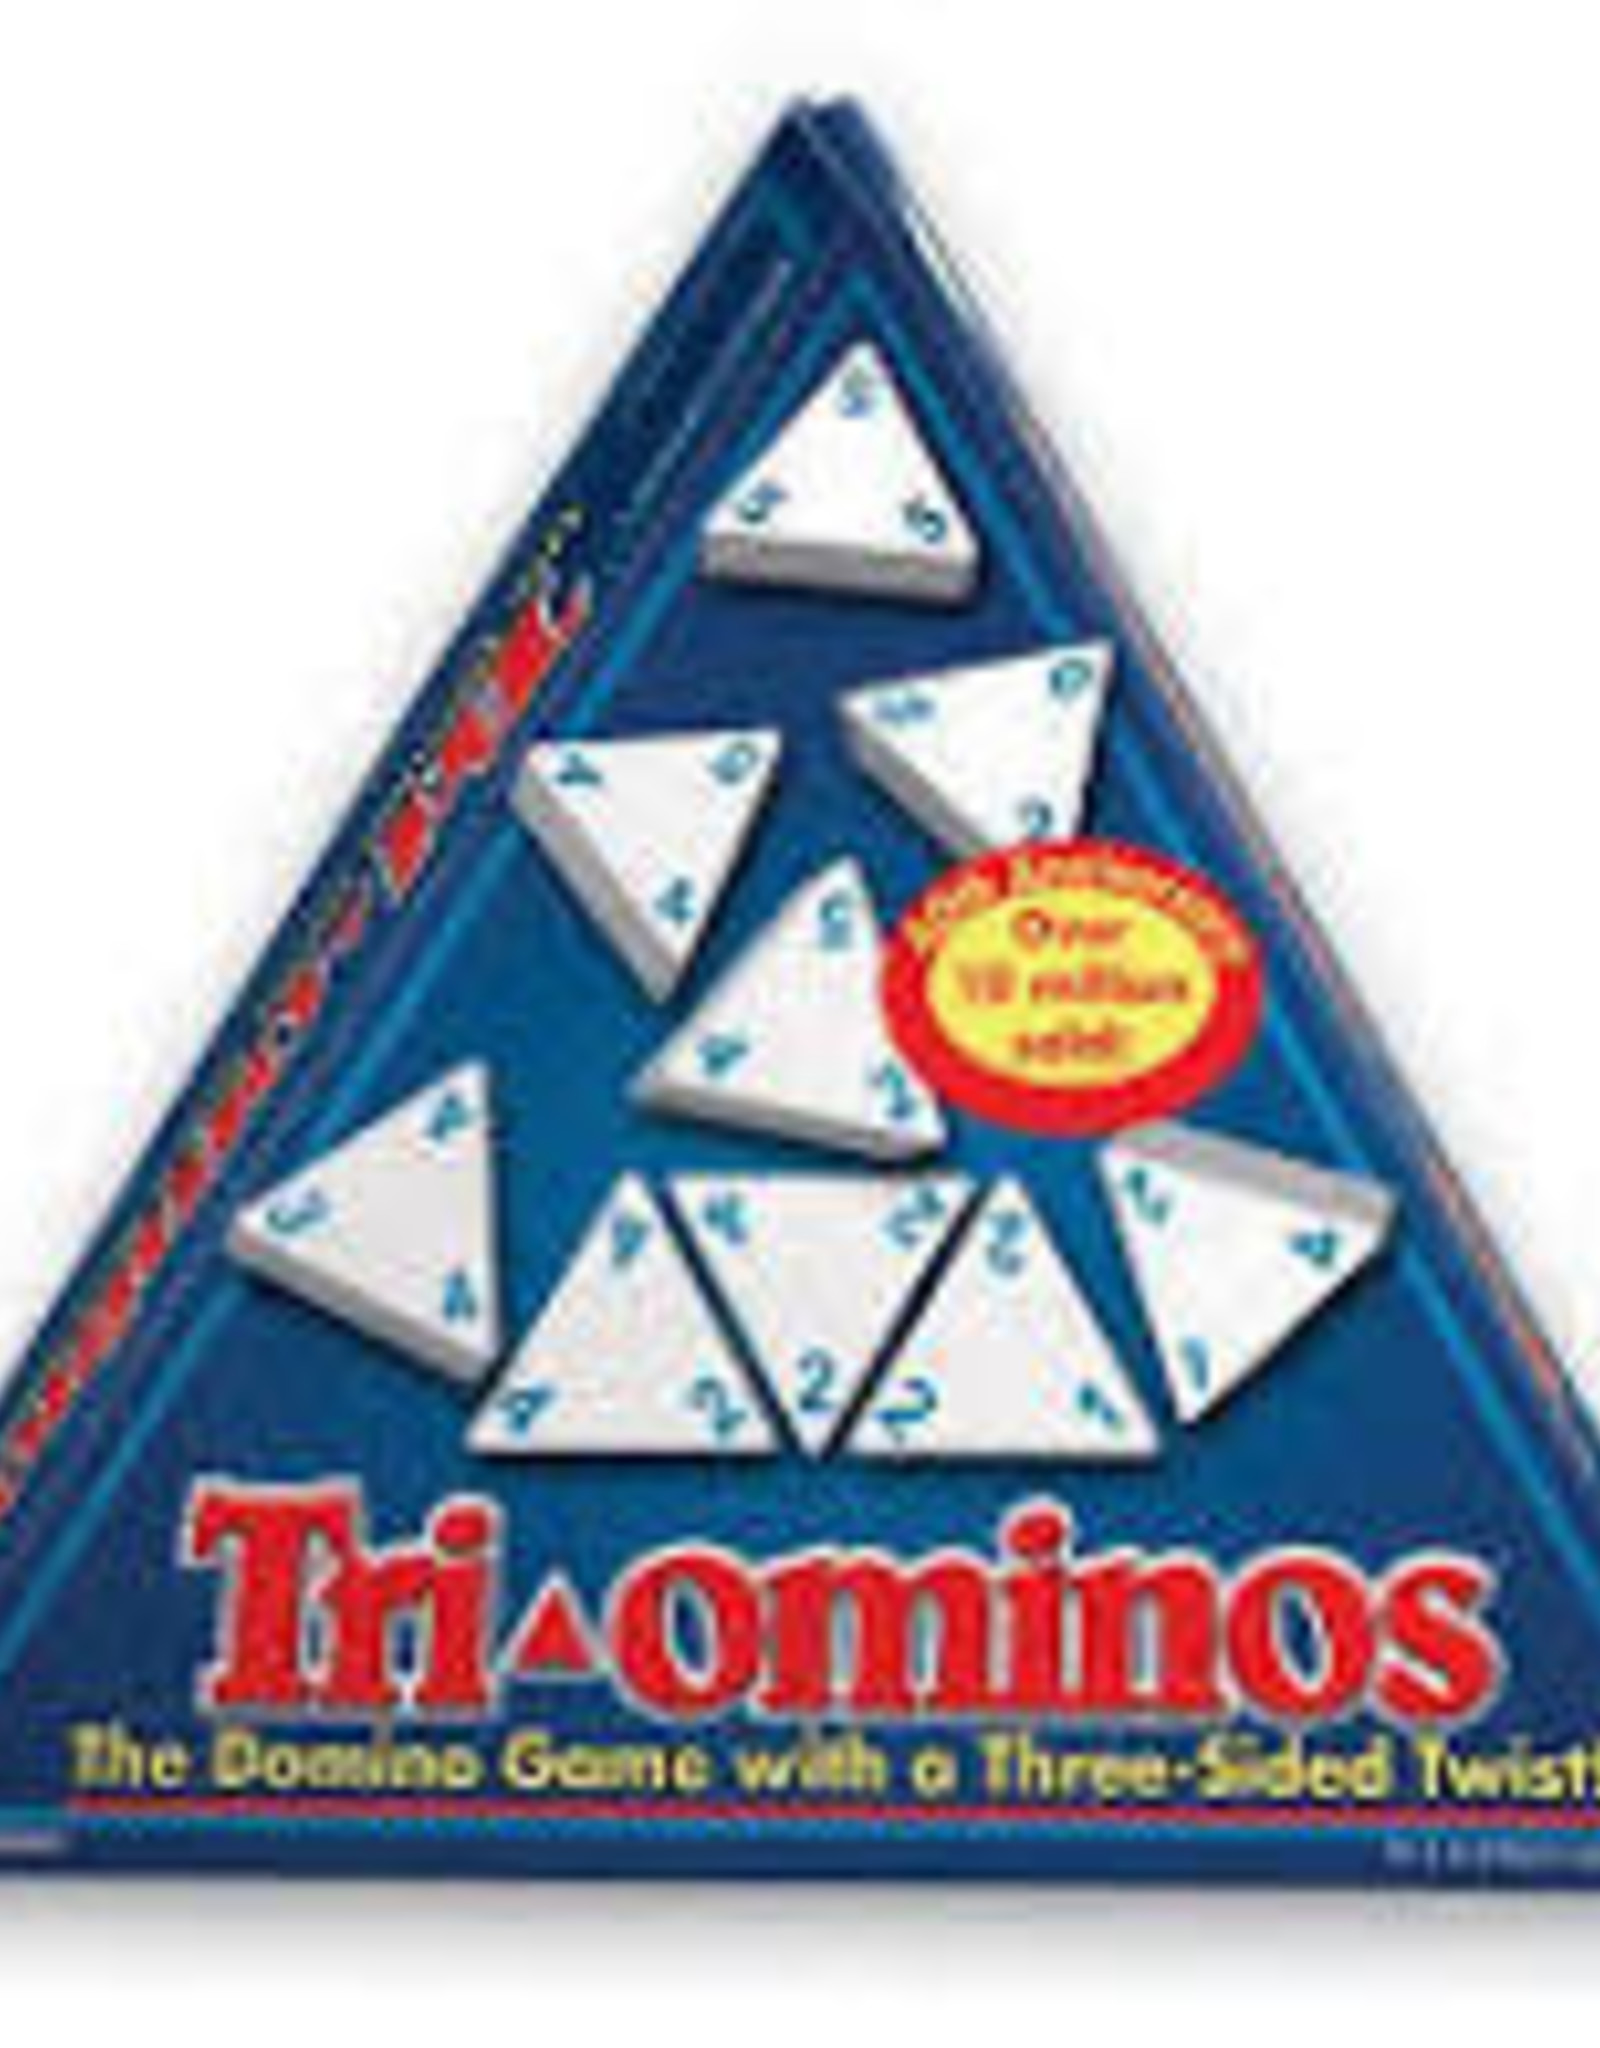 Tri-ominos Travel- jax